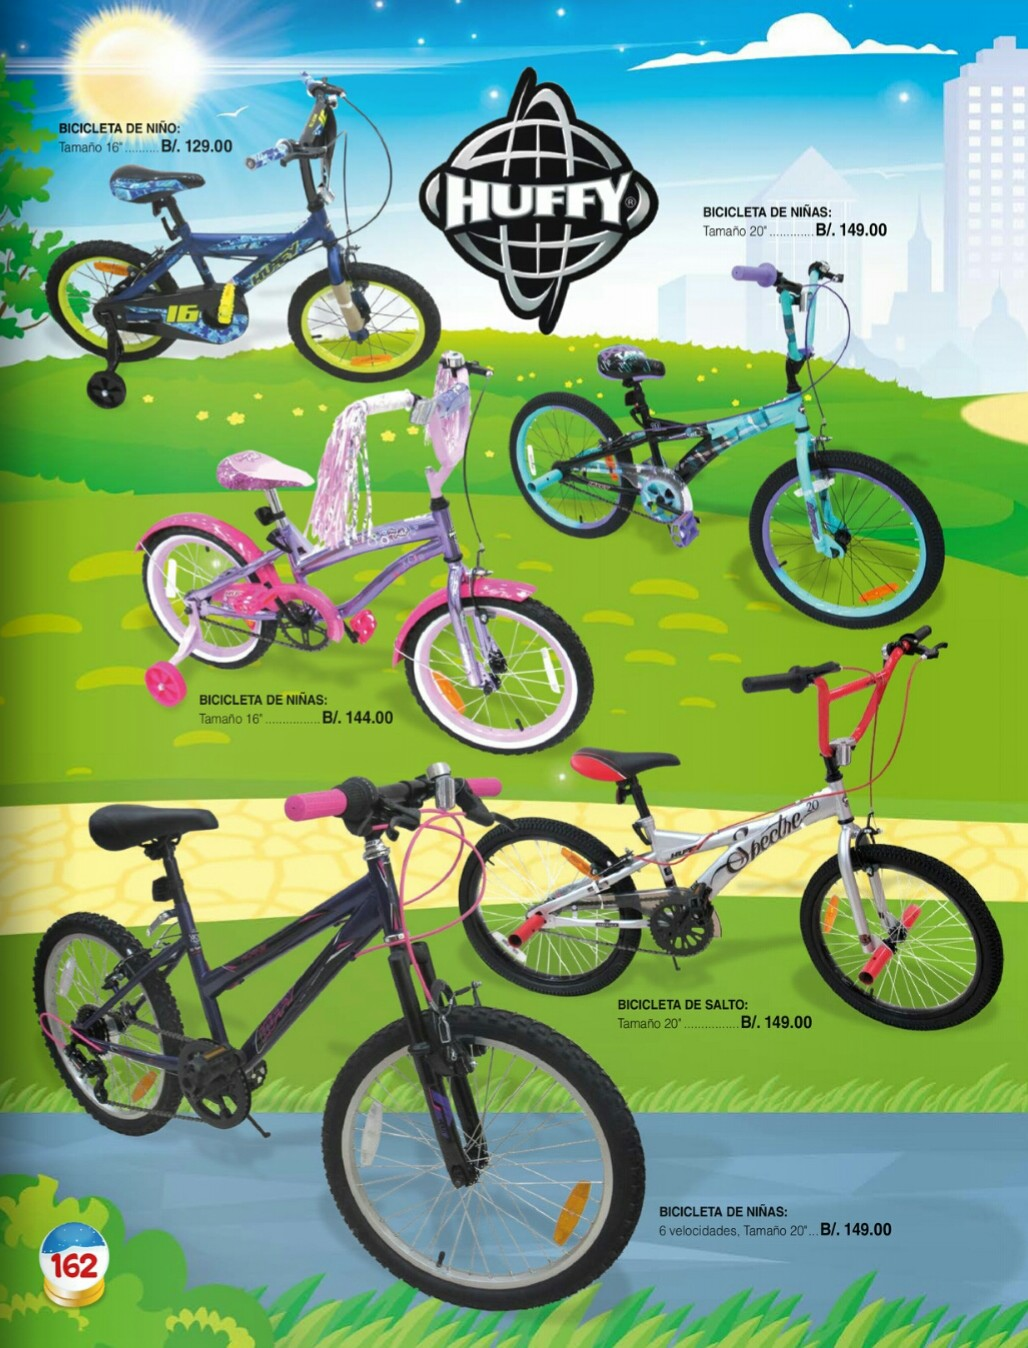 Catalogo juguetes Stivie toys 2018 p162